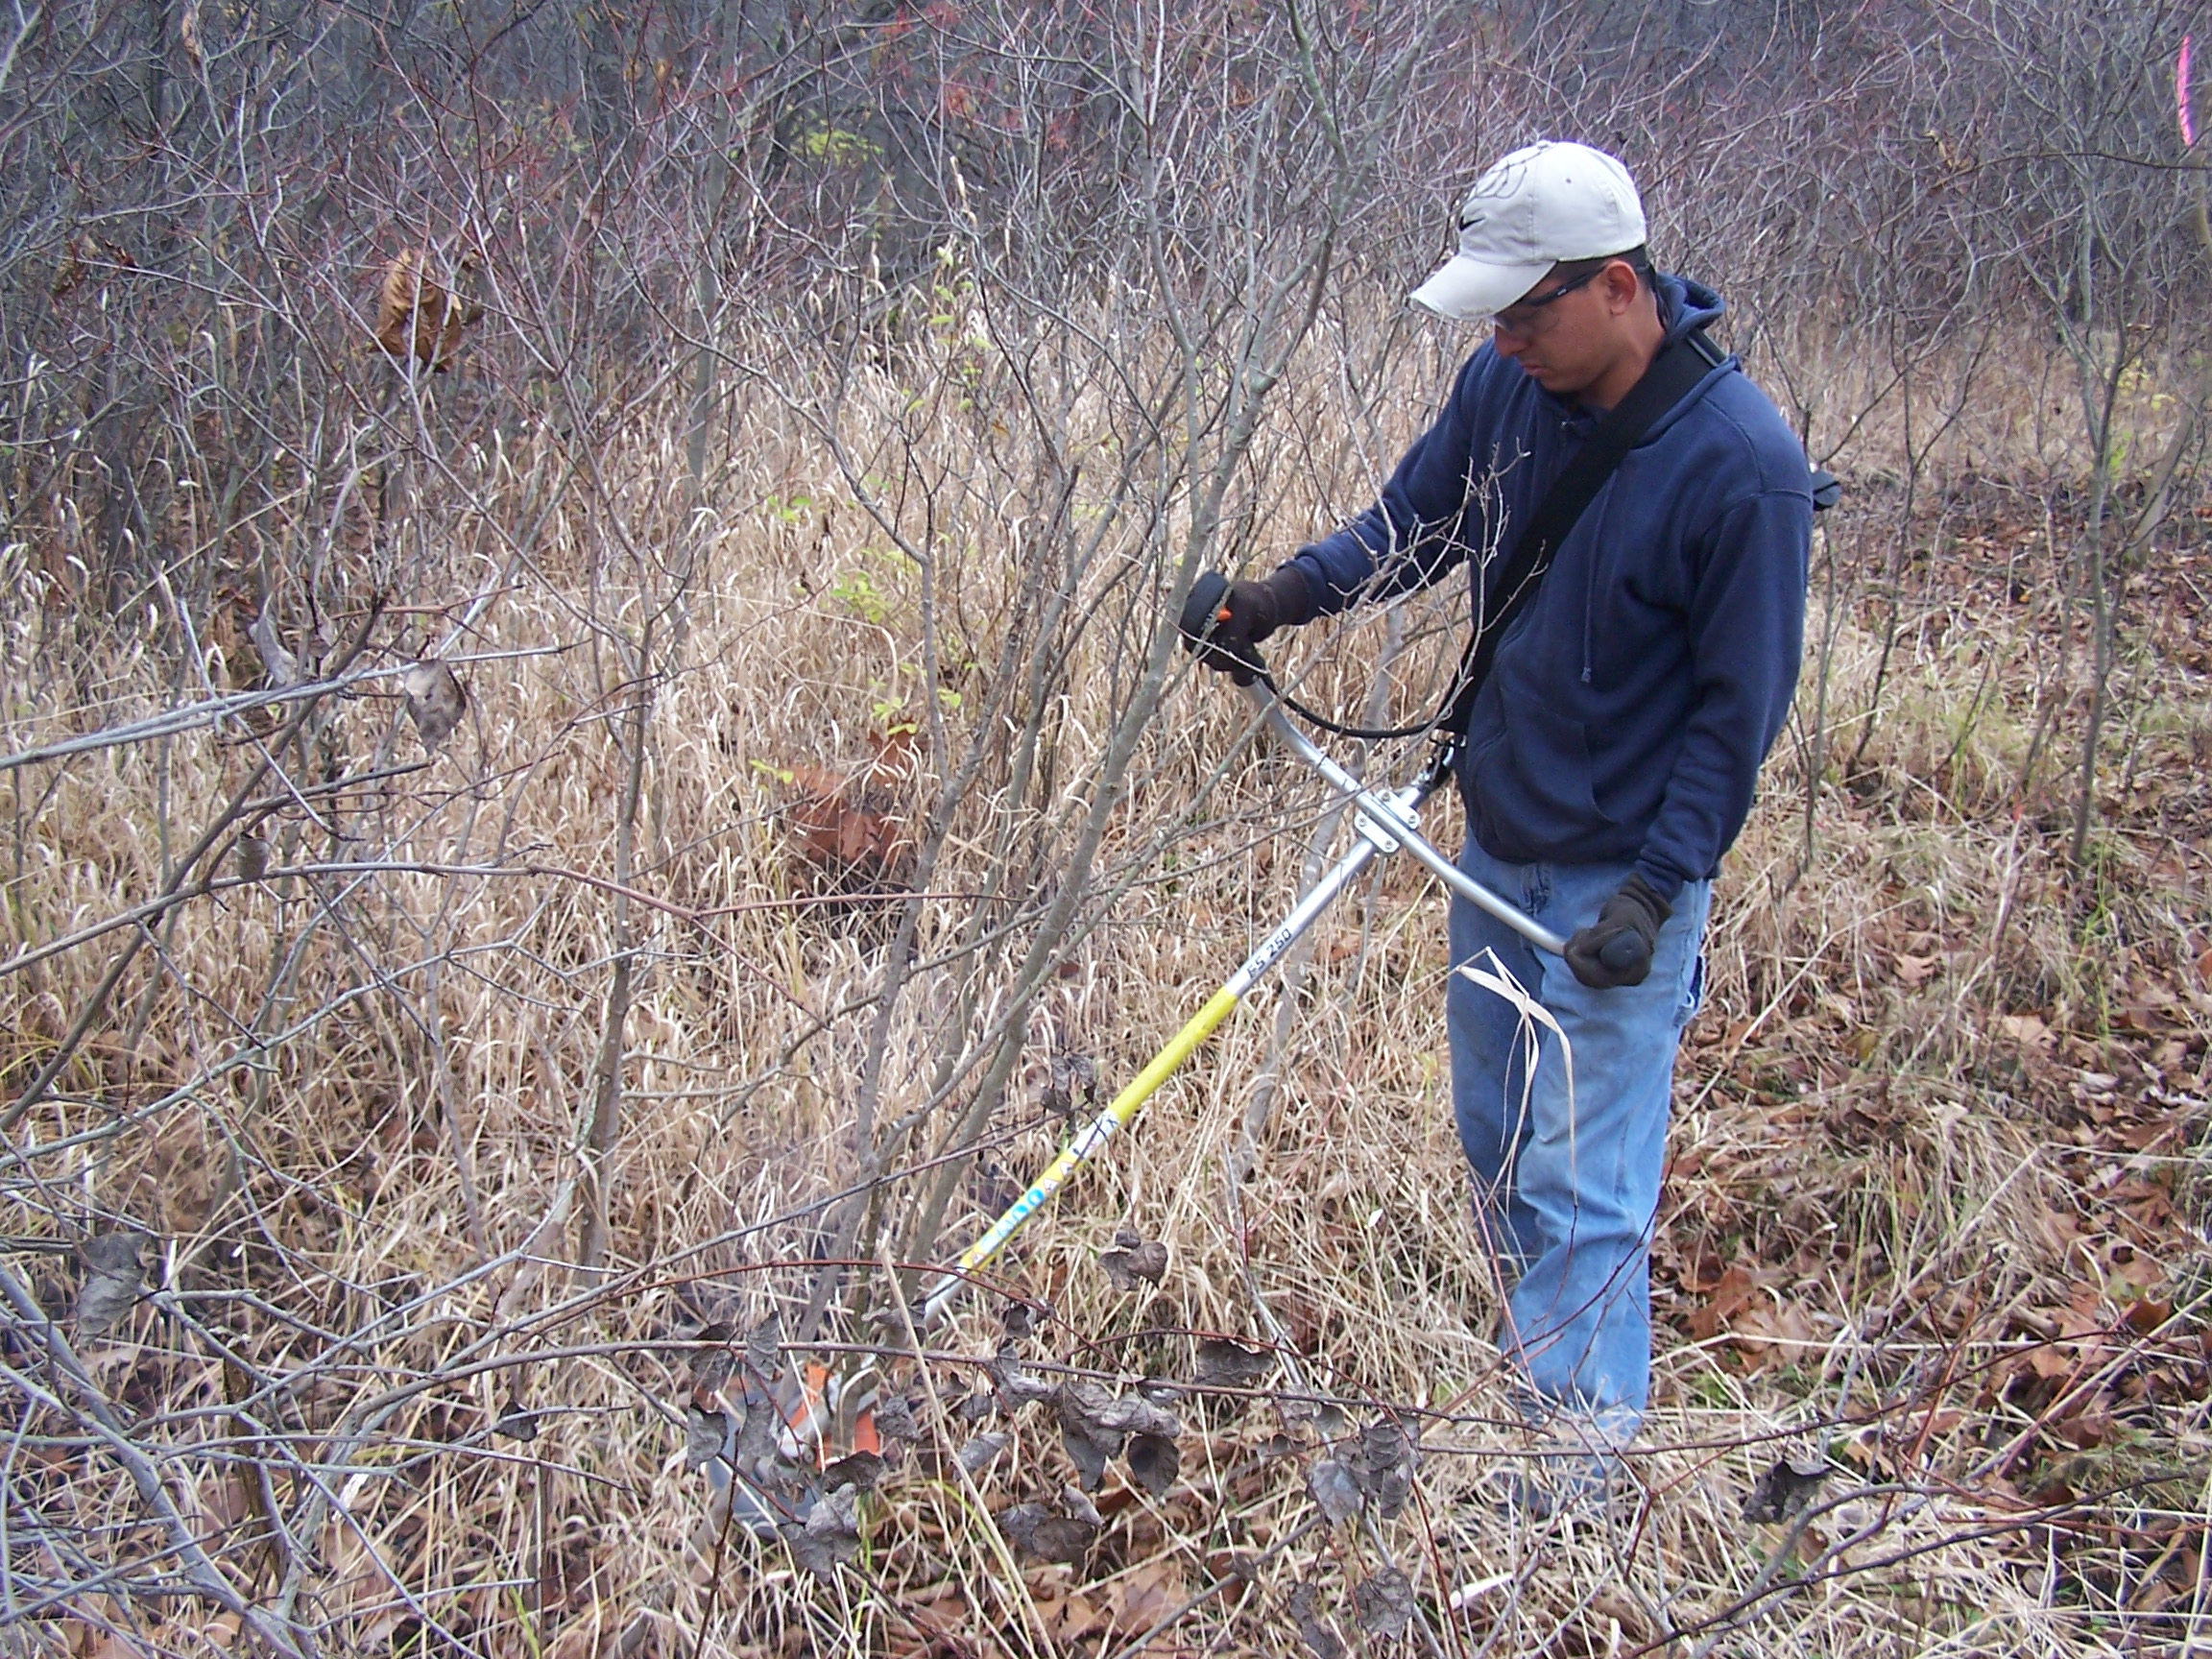 Brush cutter being used to remove gray dogwood.